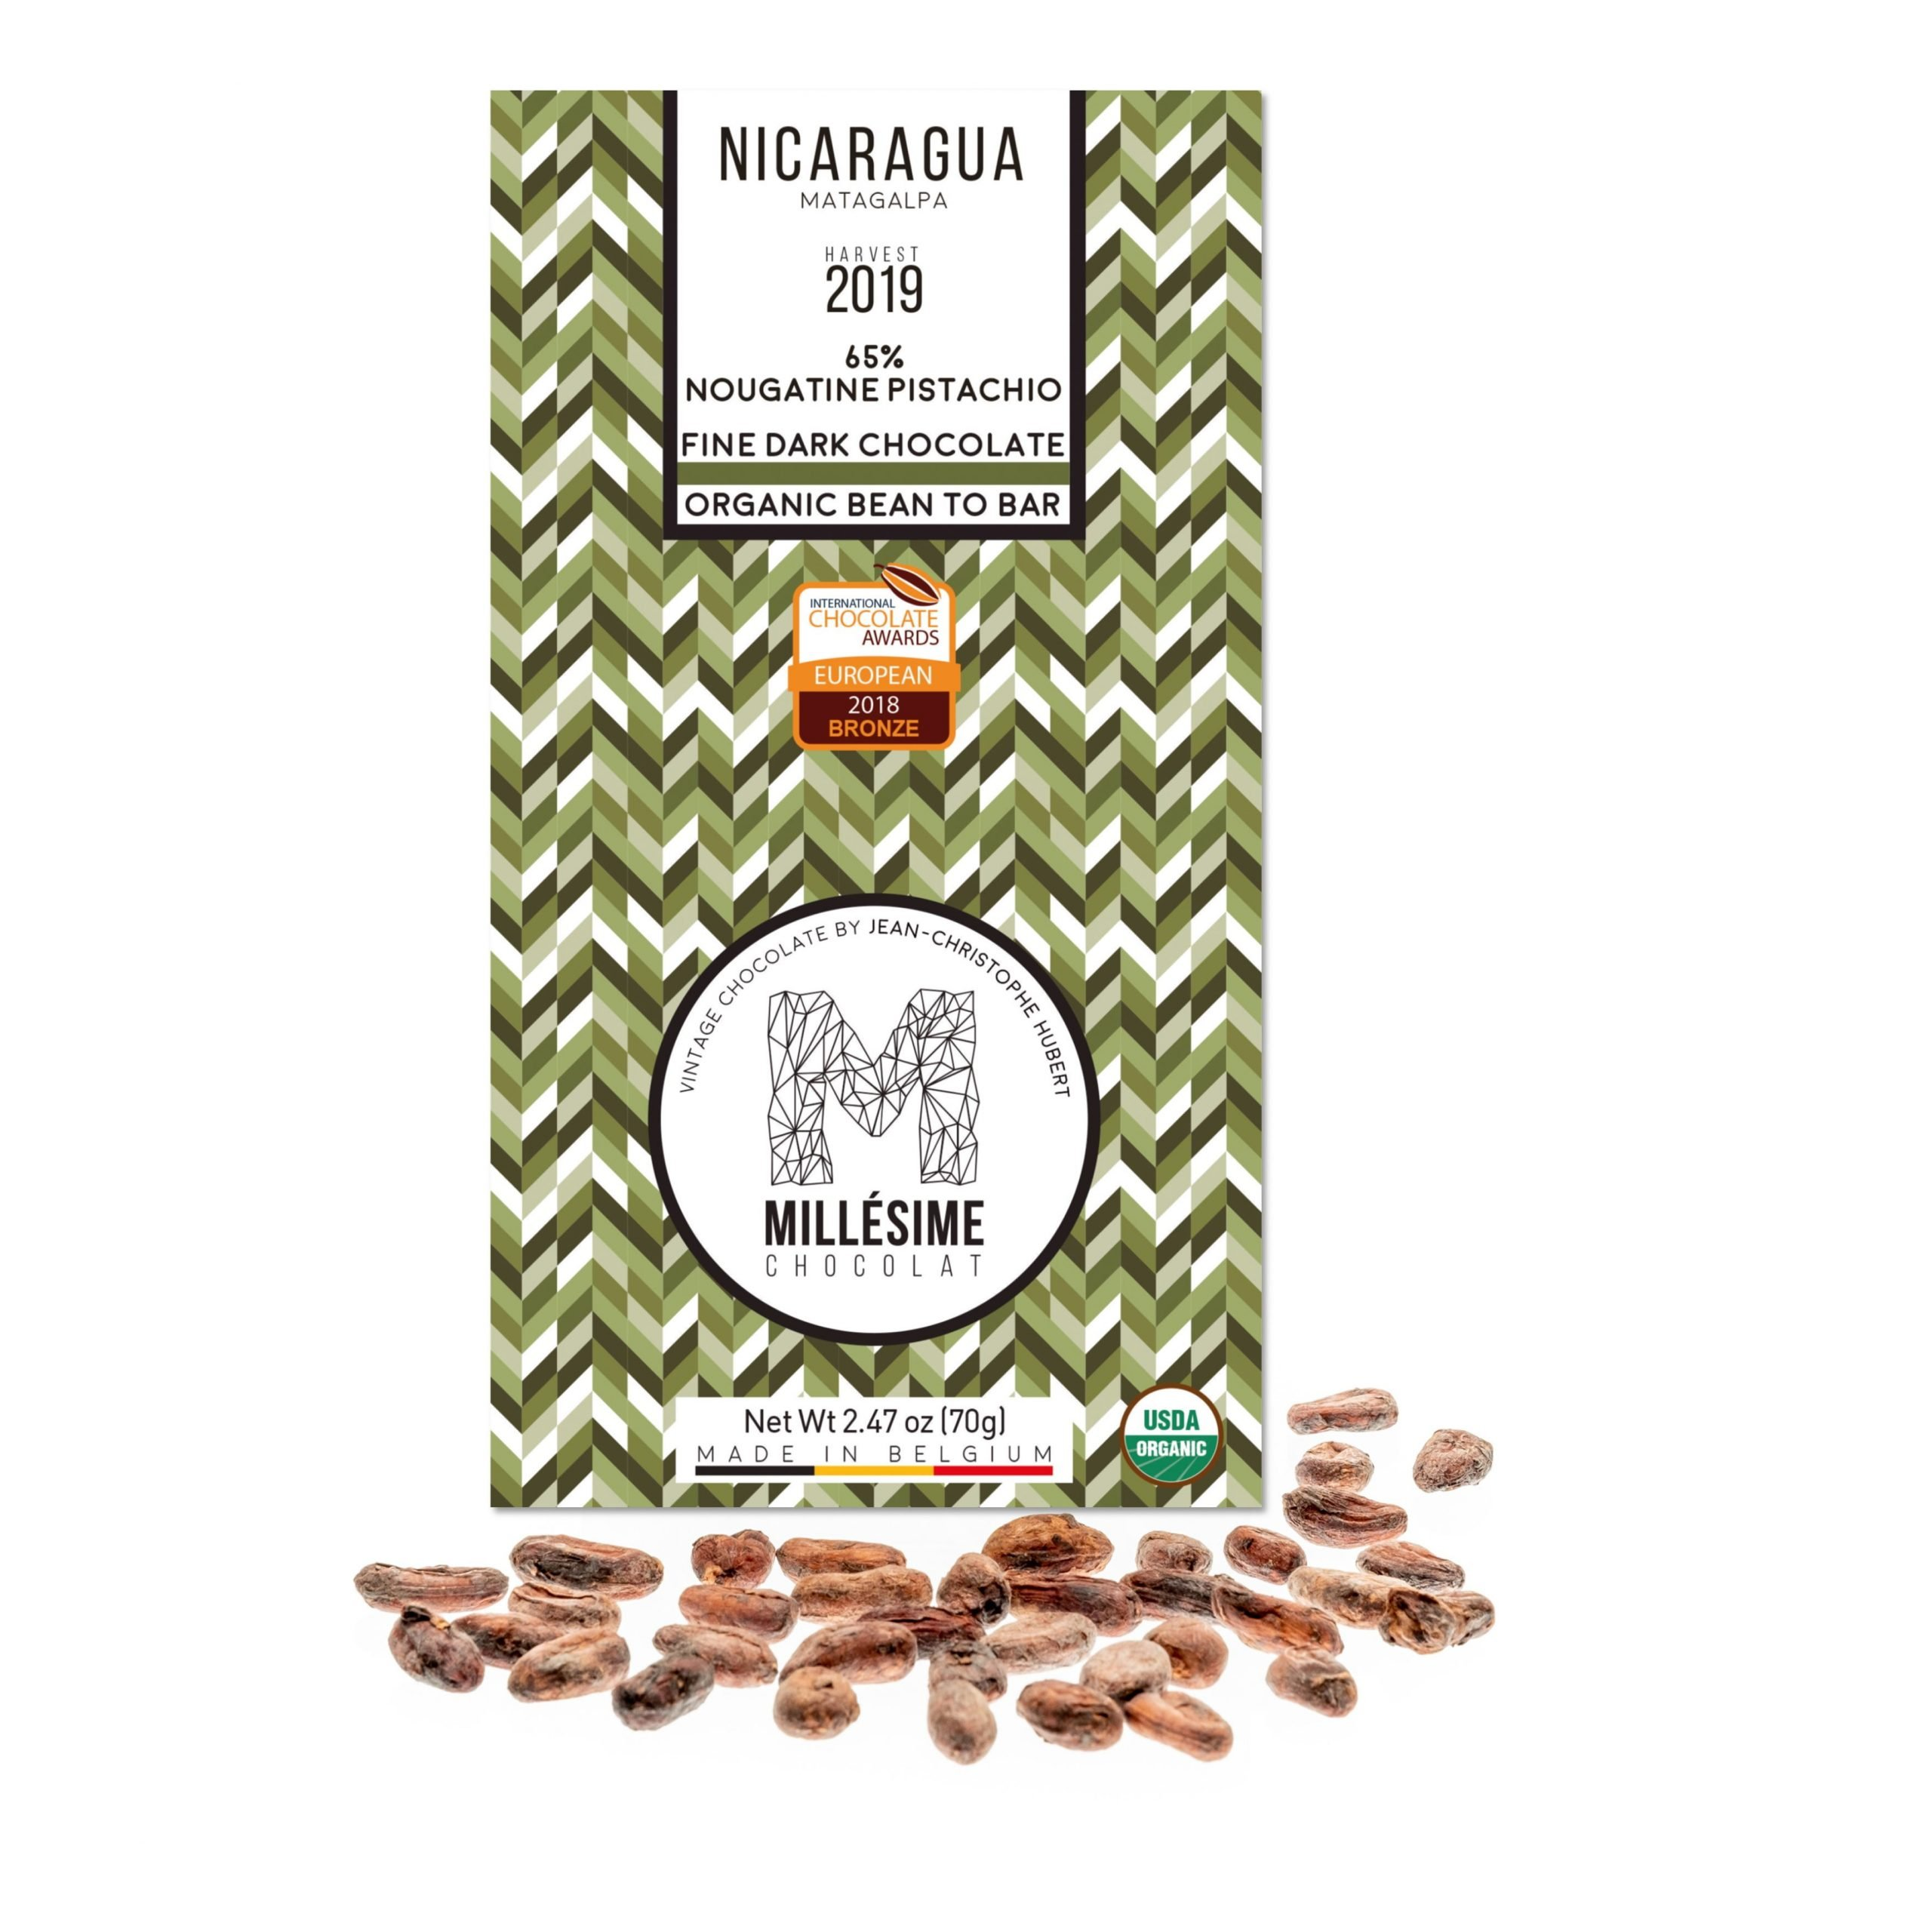 Millésime Nicaragua 65% Dark Chocolate Bar with Pistachio Nougatine Filling